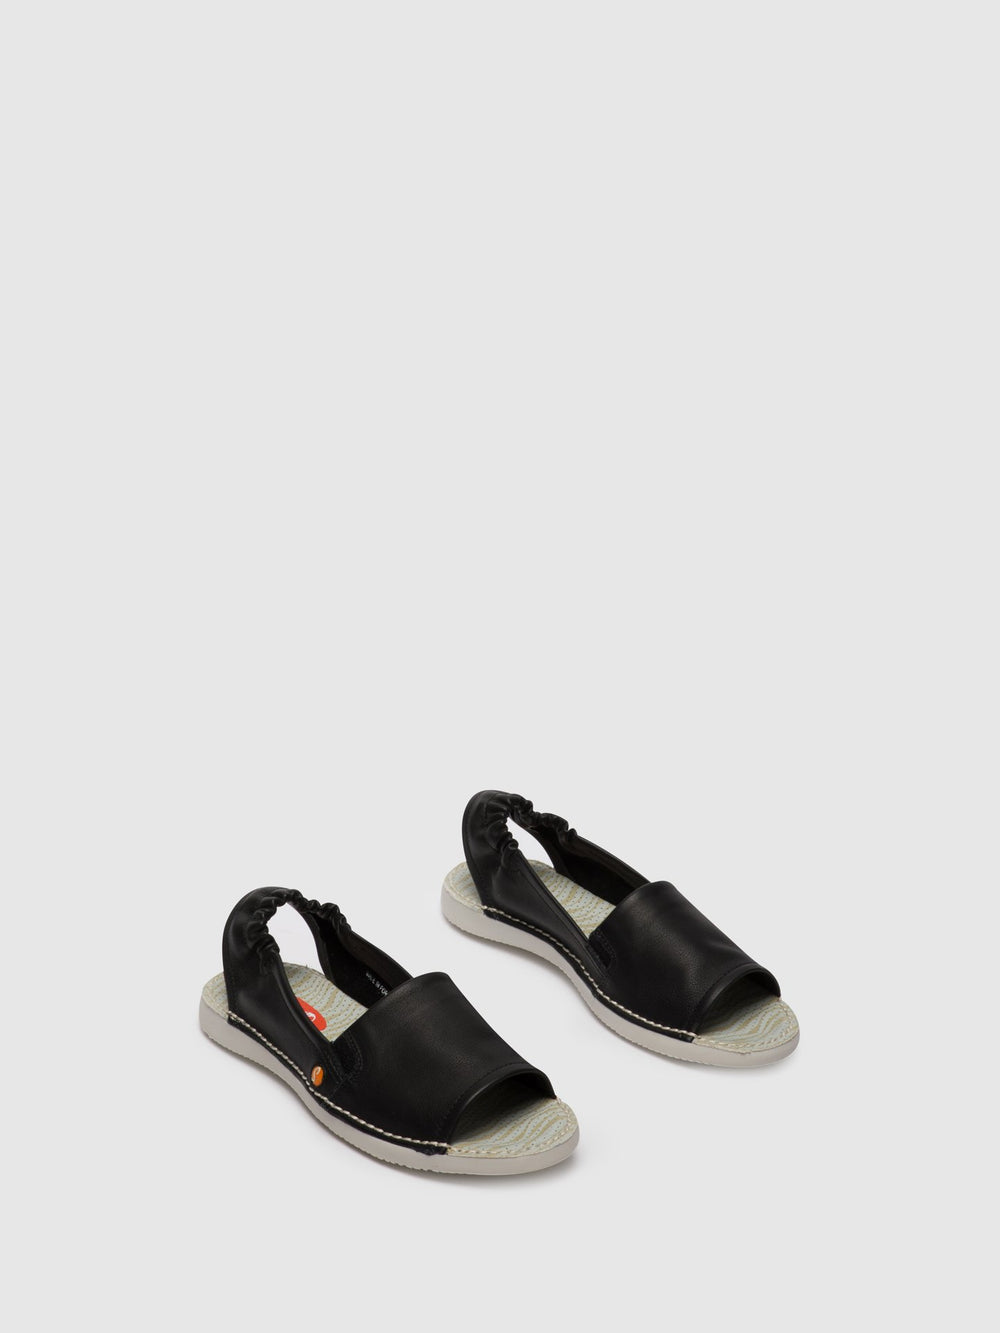 Sling-Back Sandals TEE430SOF Black